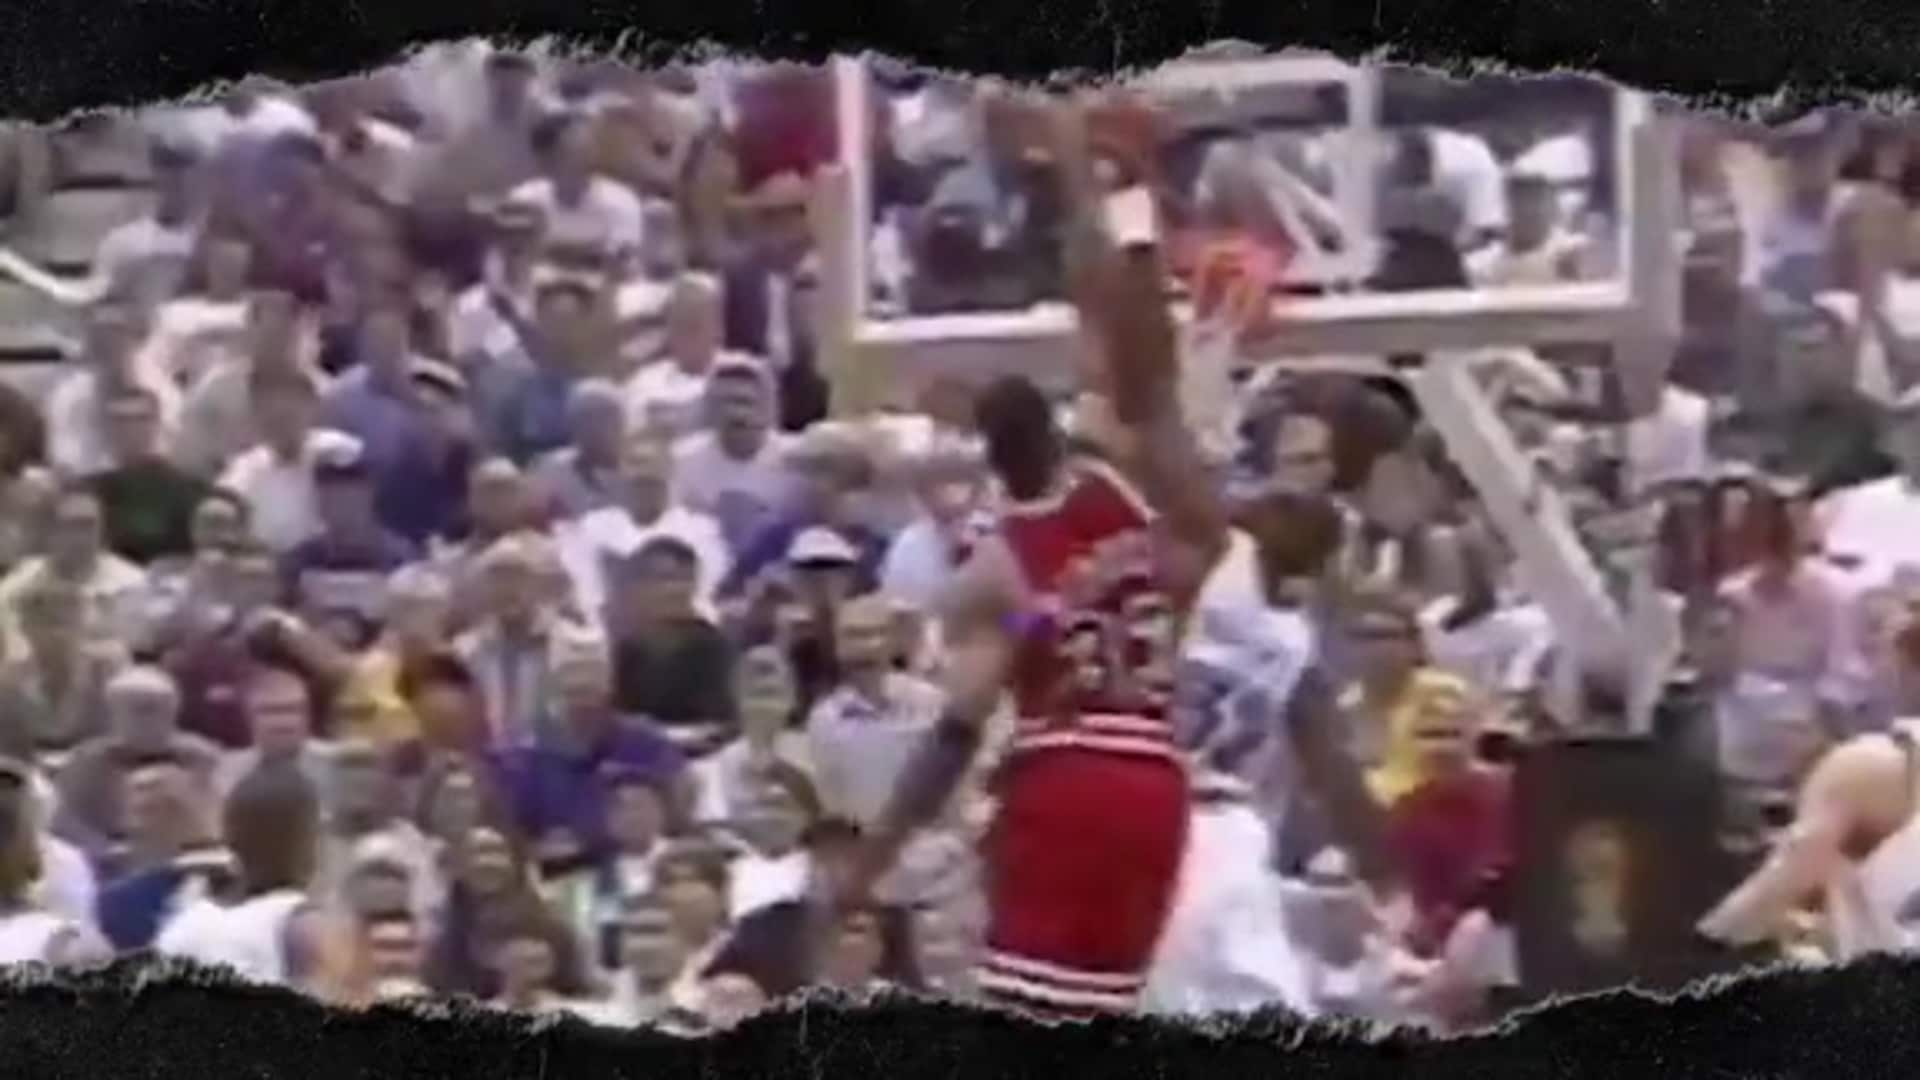 All-Time Dunk Bracket: #2 Pippen dunk on Karl Malone (1997 finals)